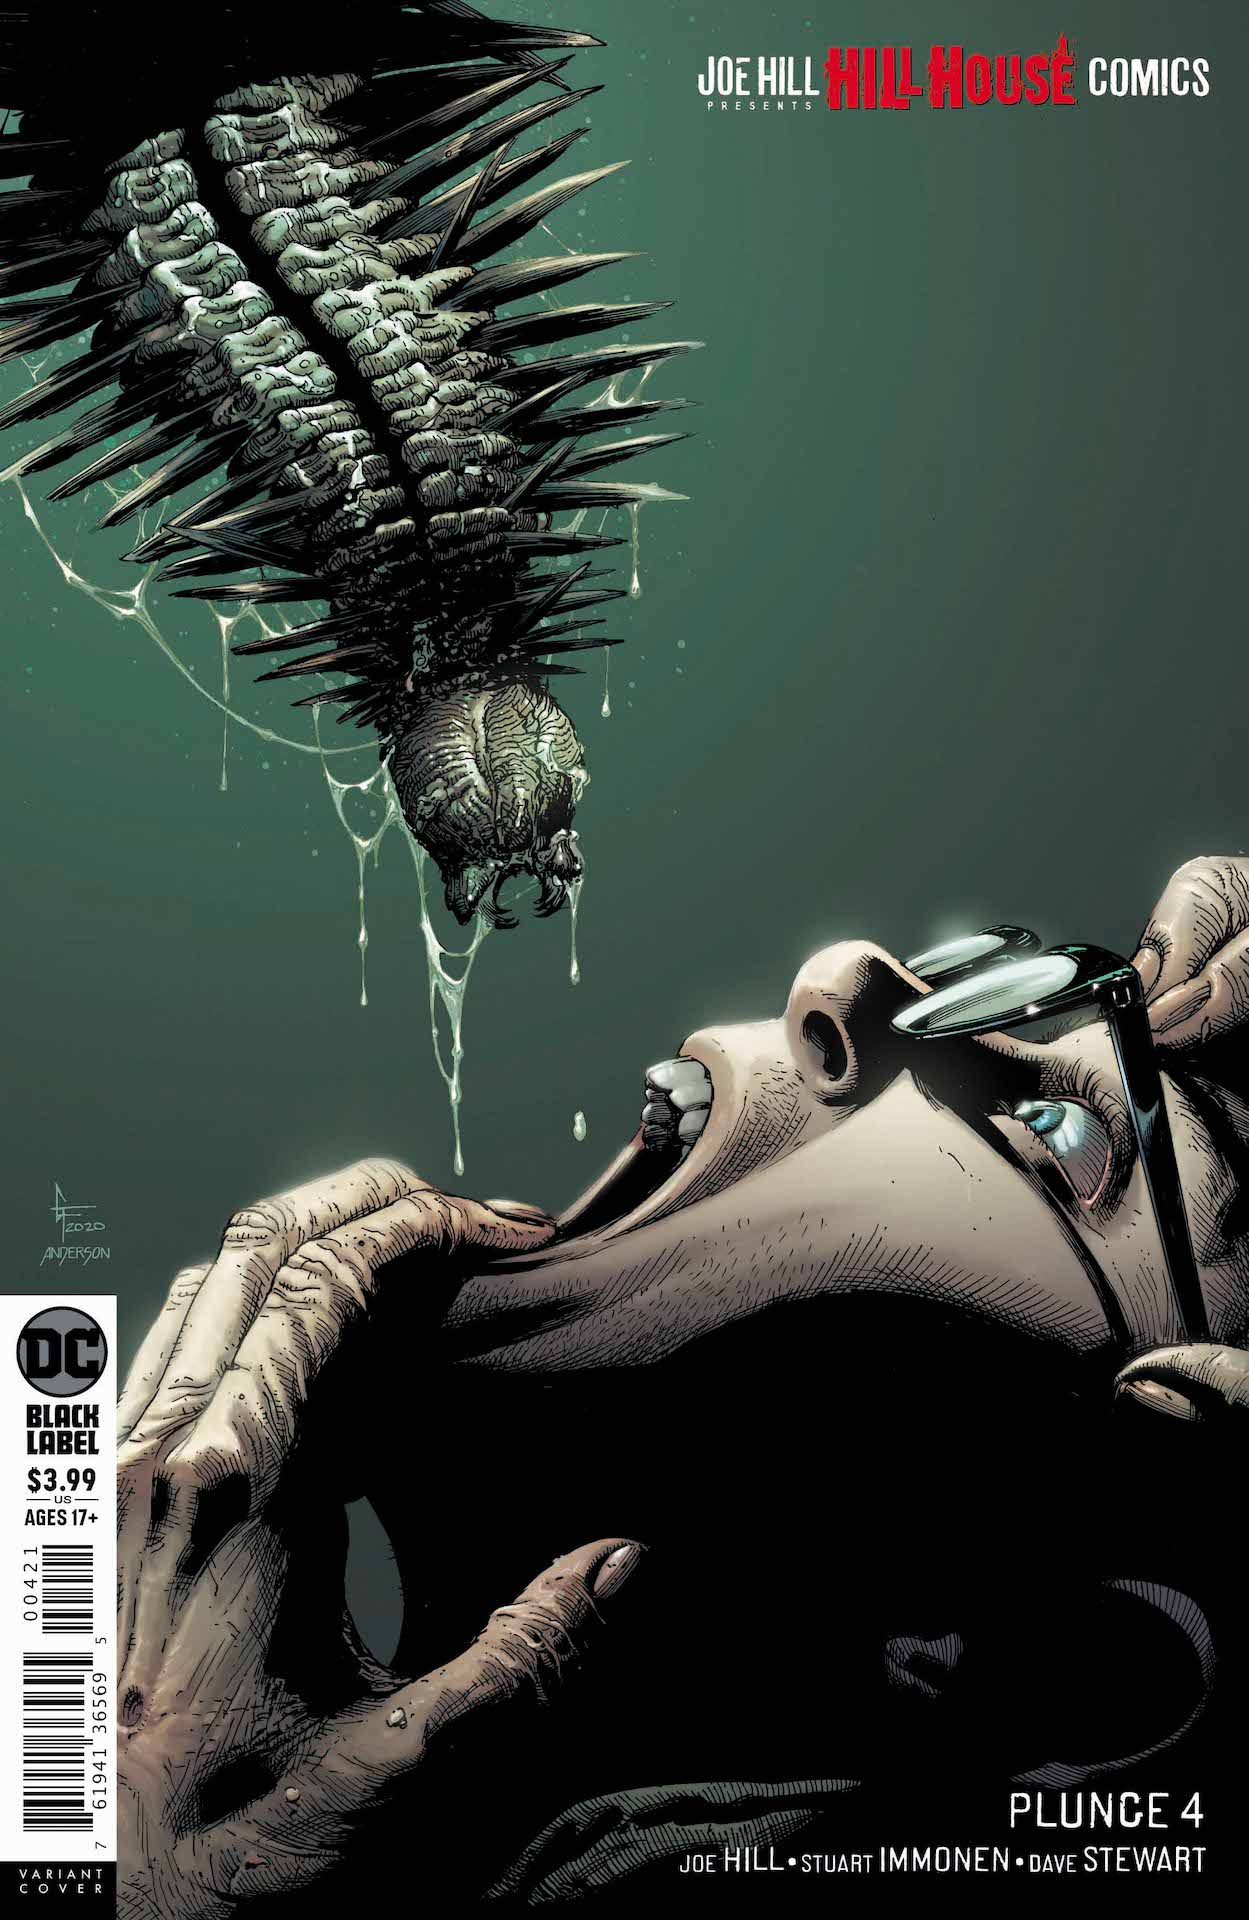 Lacome does the math and comes to an alarming conclusion in Plunge #4.